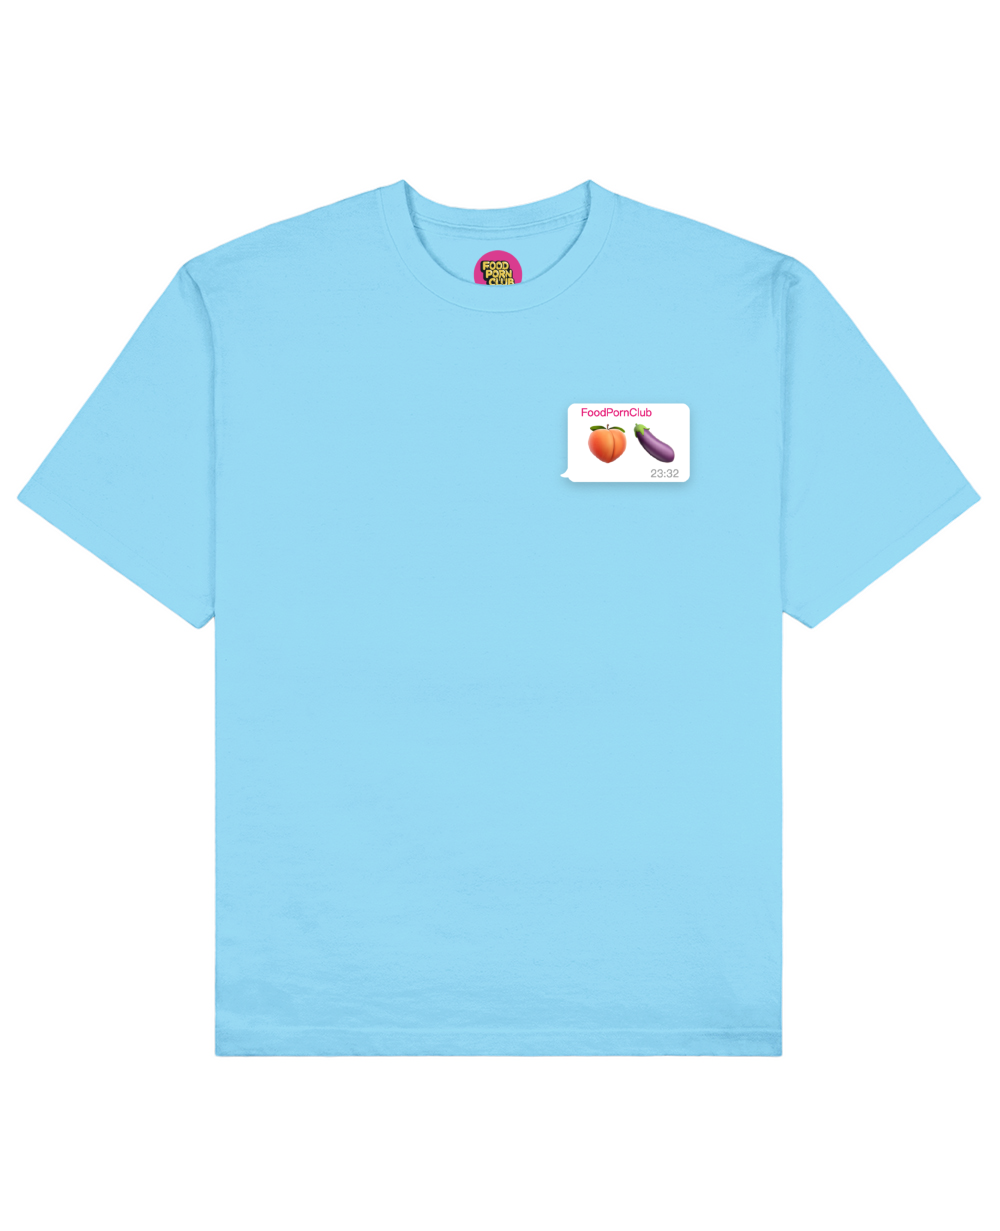 Dirty Emoji Print T-Shirt in Light Blue - T-Shirts - FOOD PORN CLUB - BRANMA